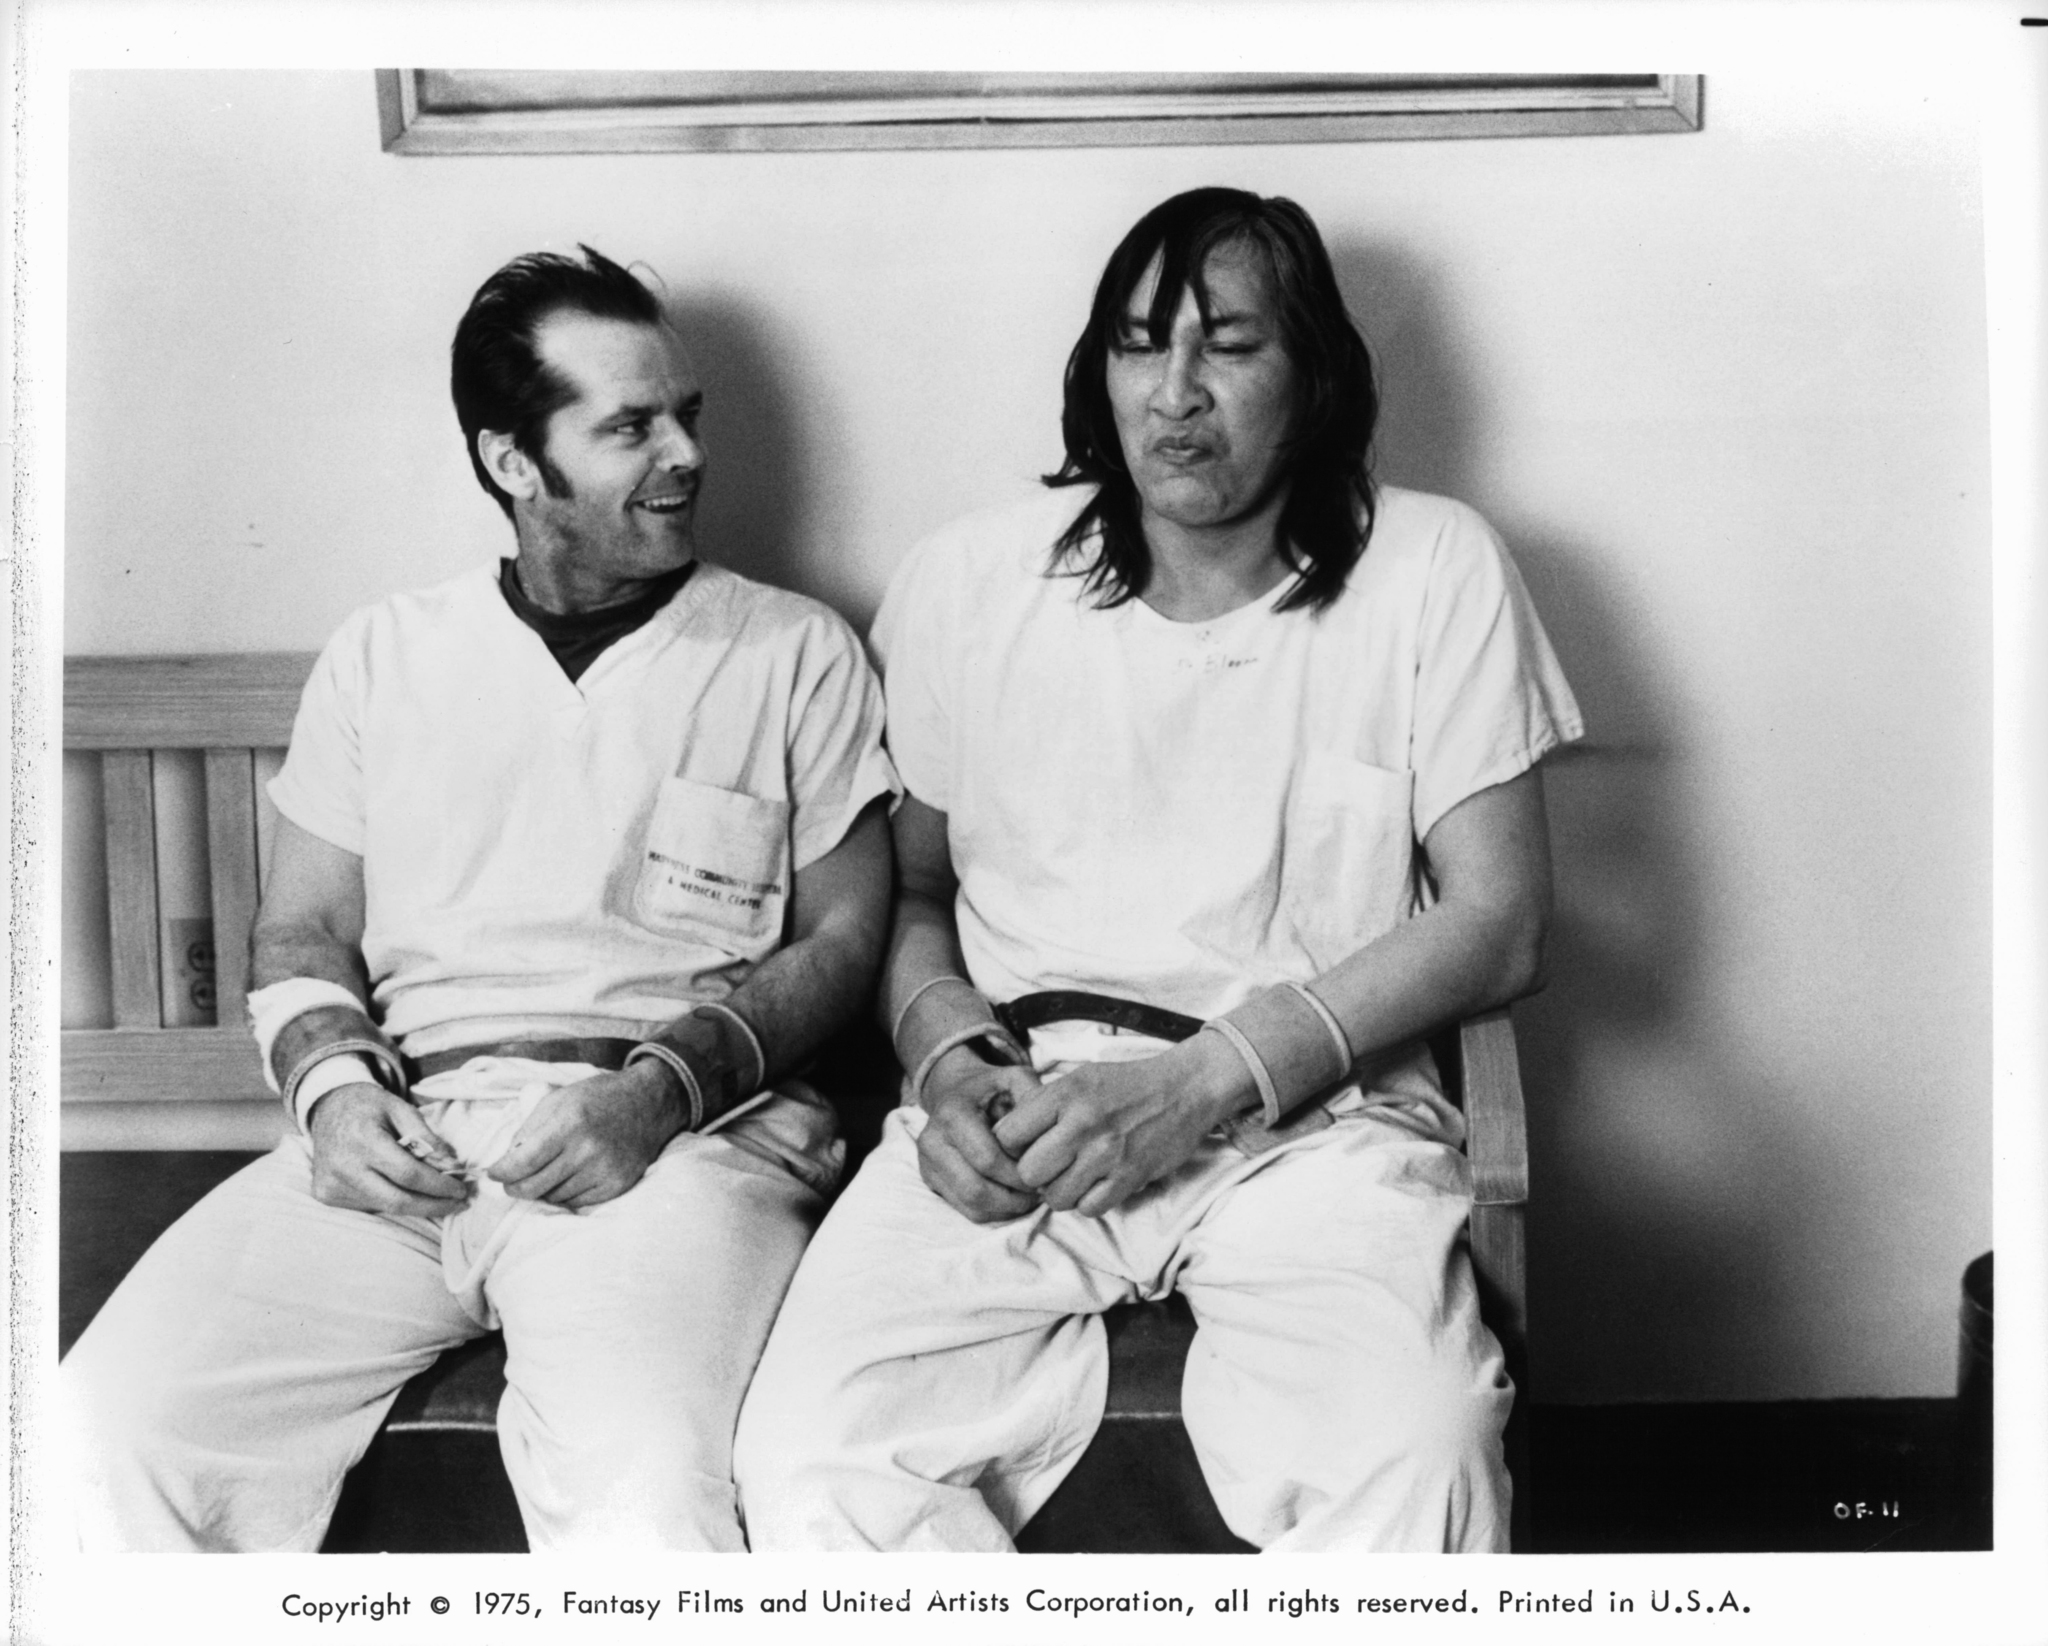 Jack Nicholson and Will Sampson in One Flew Over the Cuckoo's Nest (1975)